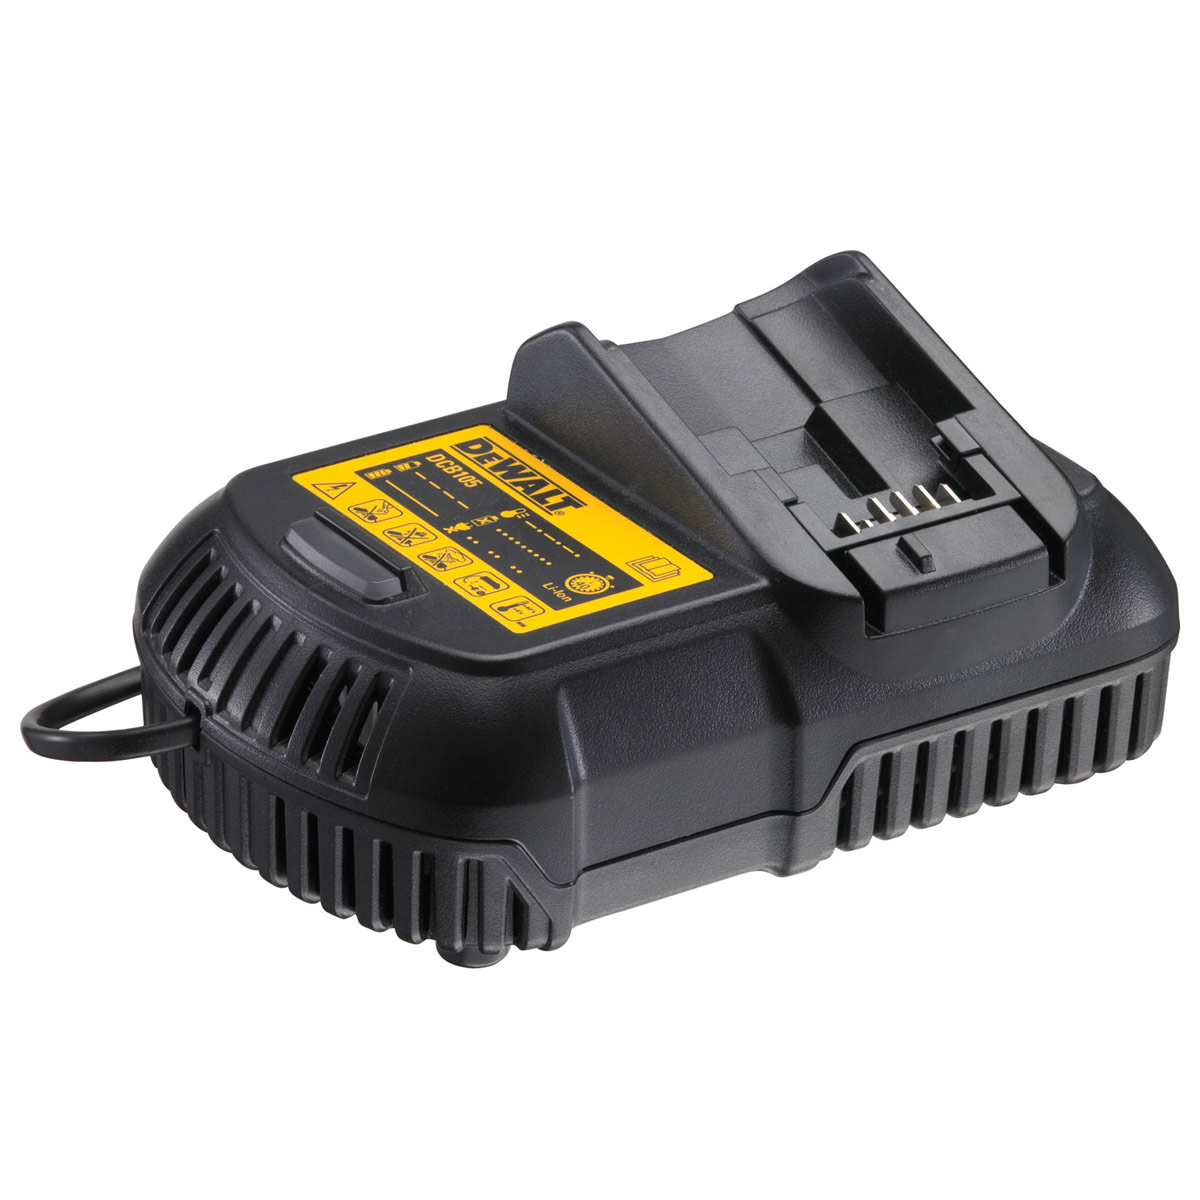 DEWALT DCB105-GB UNIVERSAL XR LITHIUM ION CHARGER FOR 10.8V 14.4V 18V BATTERIES